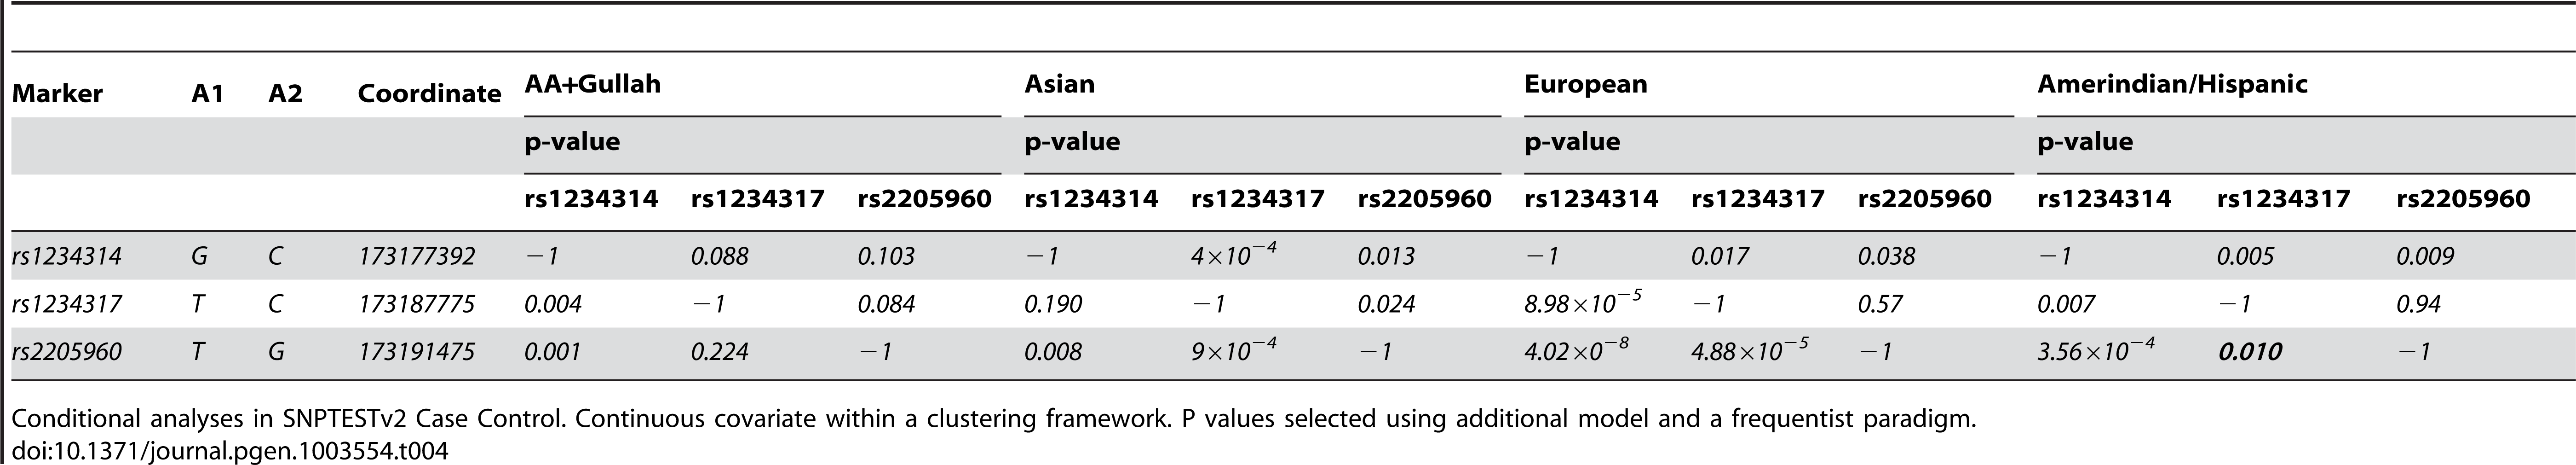 Conditional regression results for 5′TNFSF4 variants in four groups.